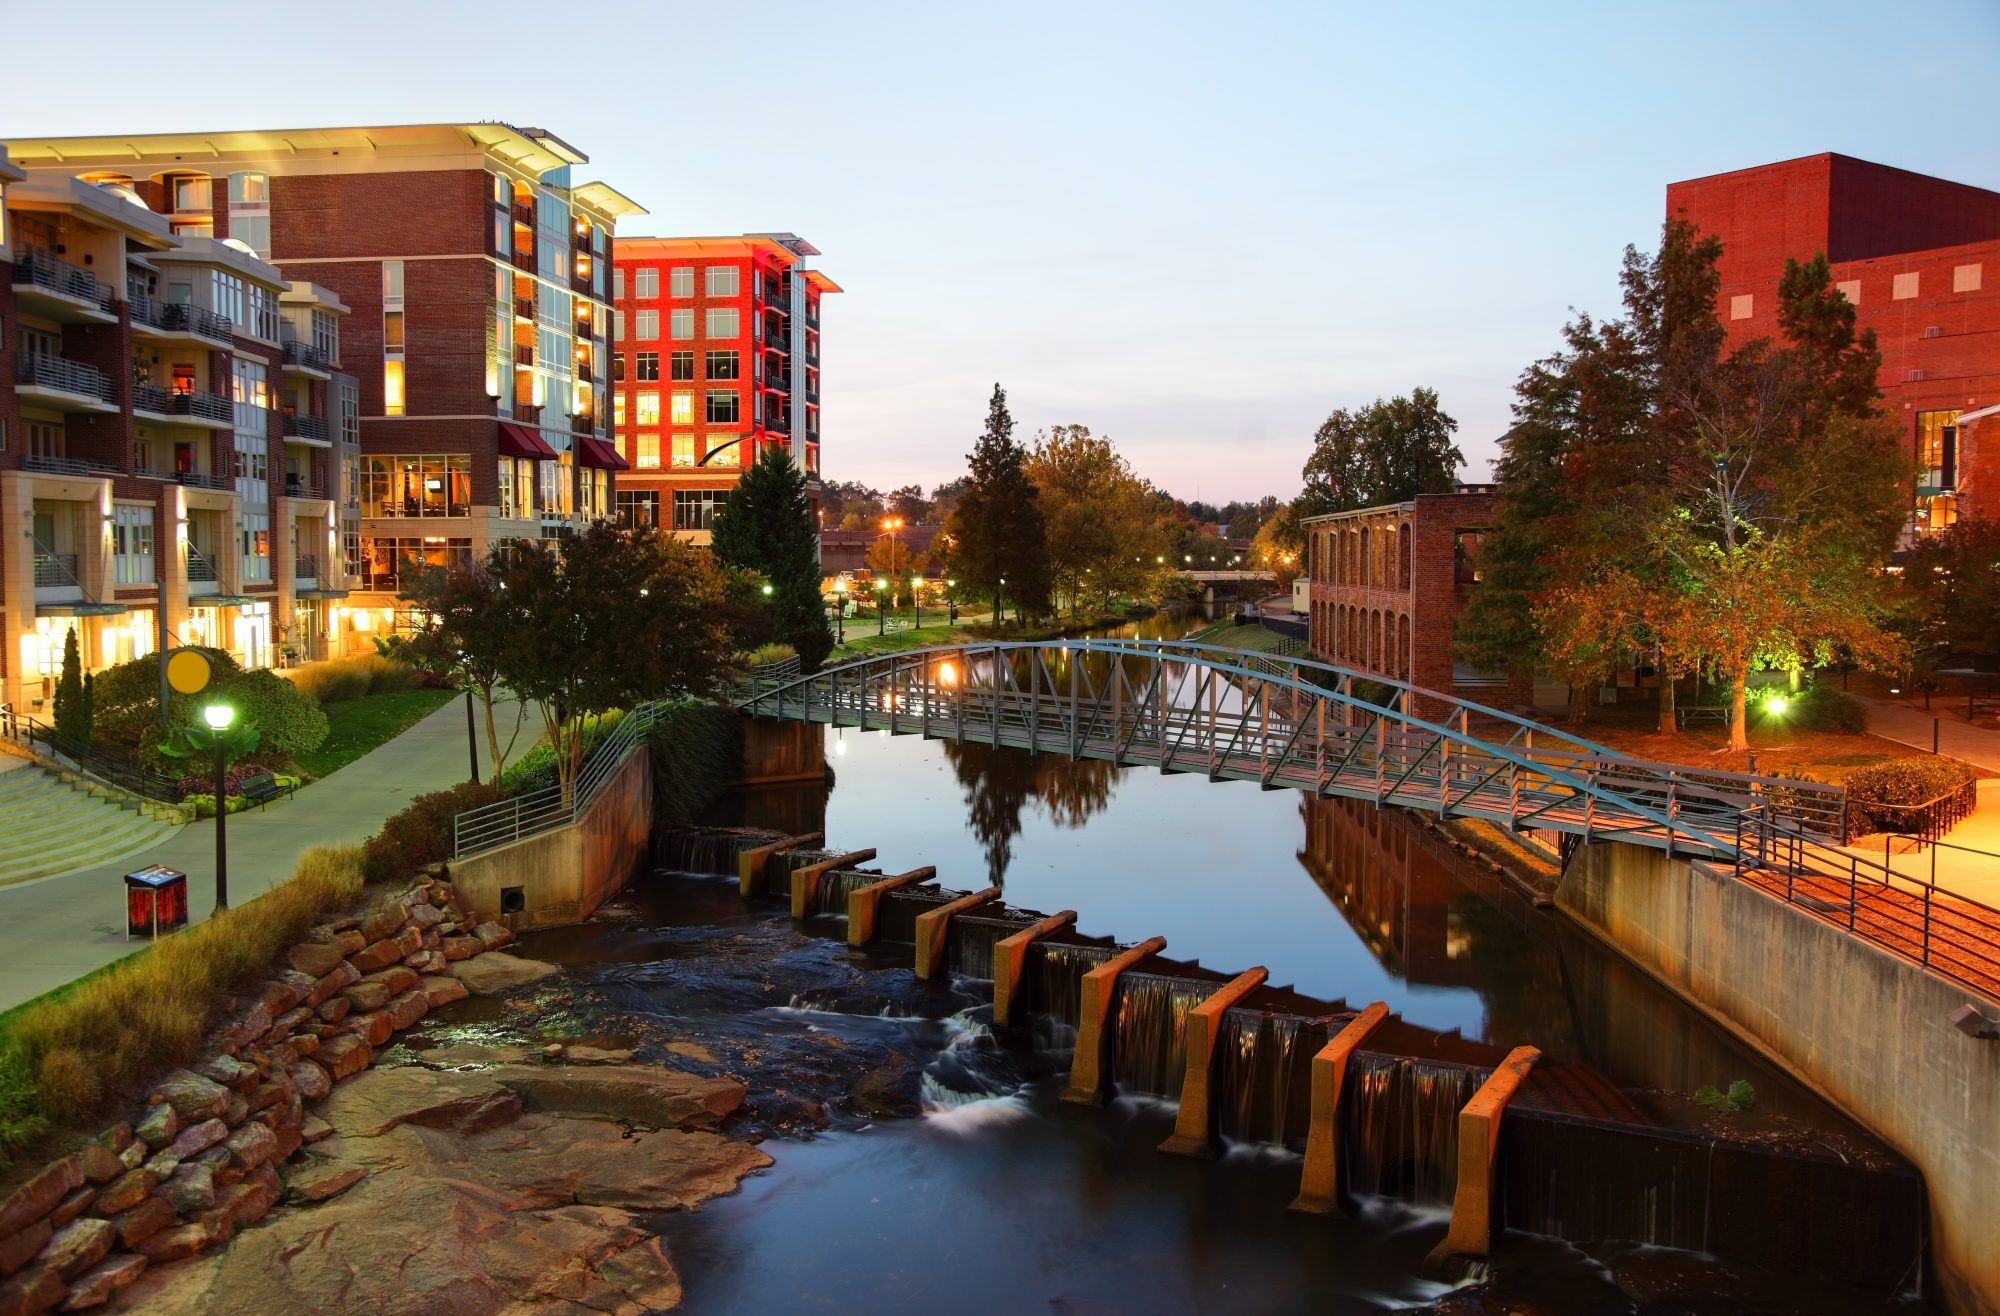 5. Greenville, South Carolina